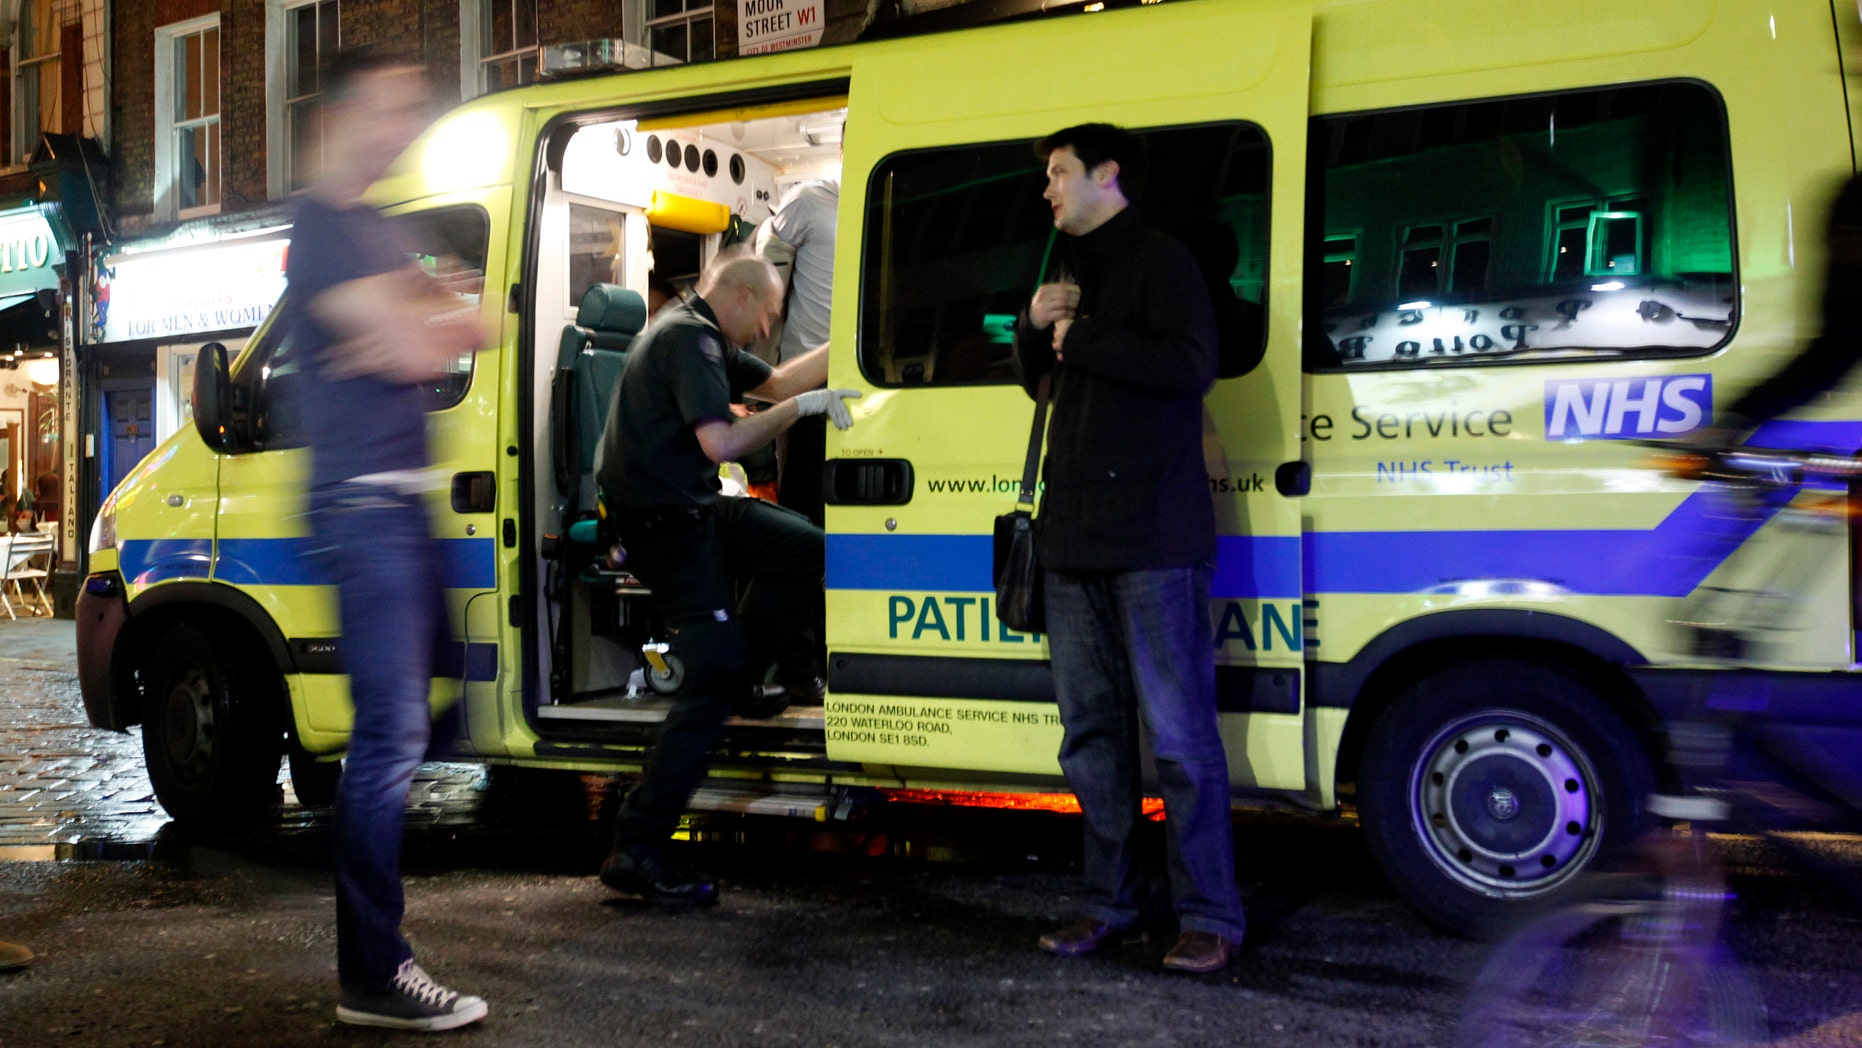 April 21: A man is taken into the ambulance, known as a 'booze bus,'  dedicated to keeping drunk people out of trouble on the streets, and out of hospital emergency rooms in the Soho area of central London.